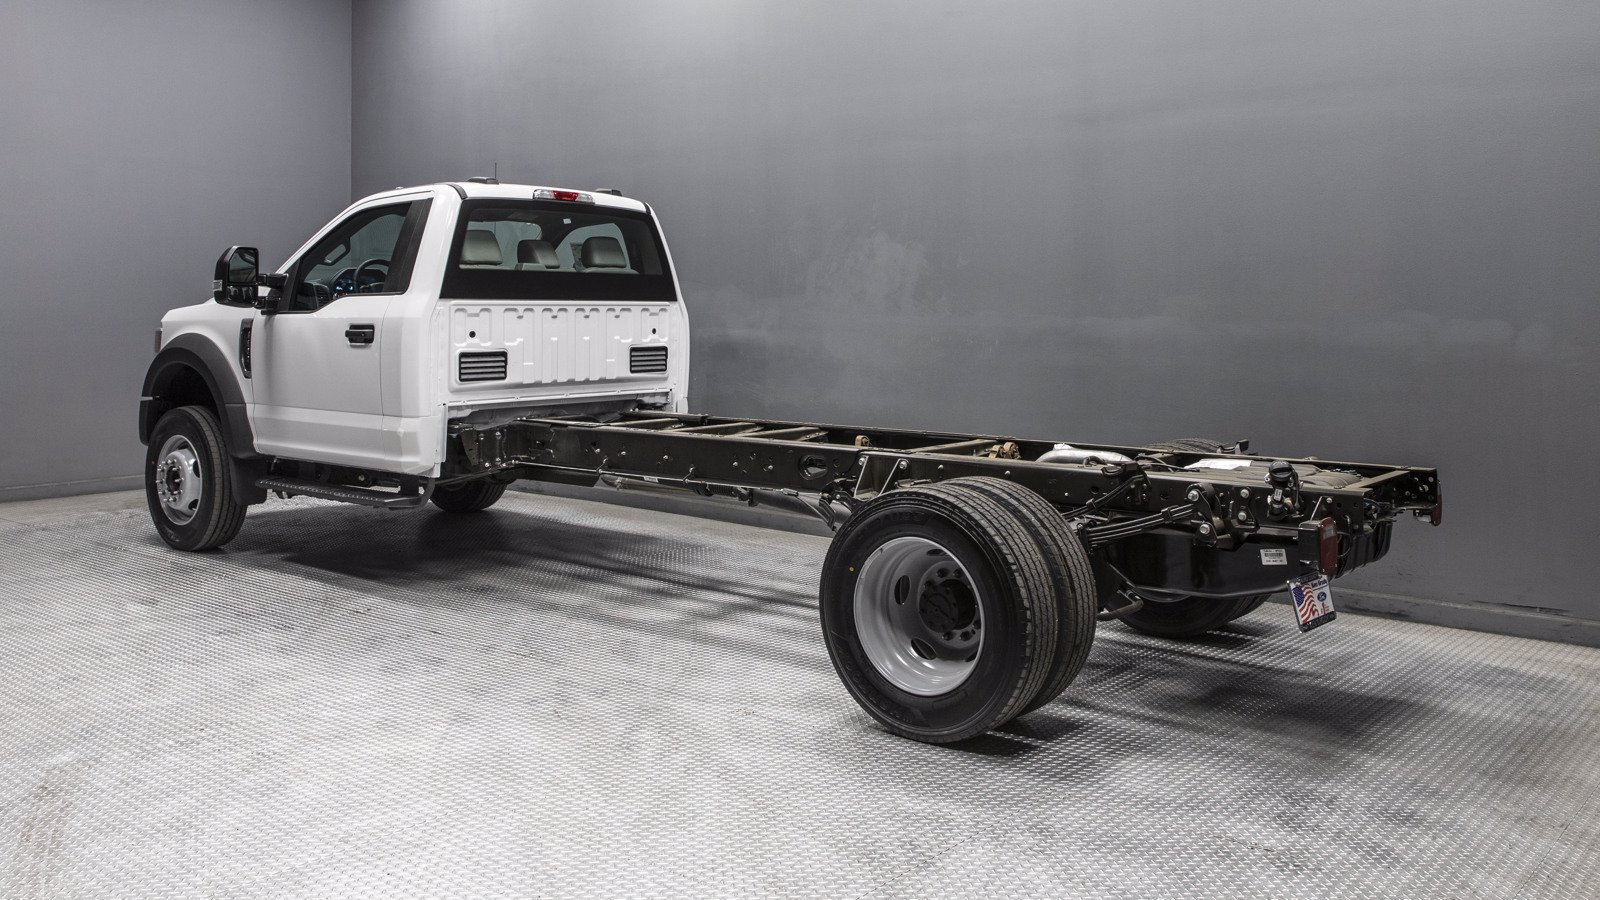 2020 Ford F-600 Regular Cab DRW 4x2, Cab Chassis #04055 - photo 1